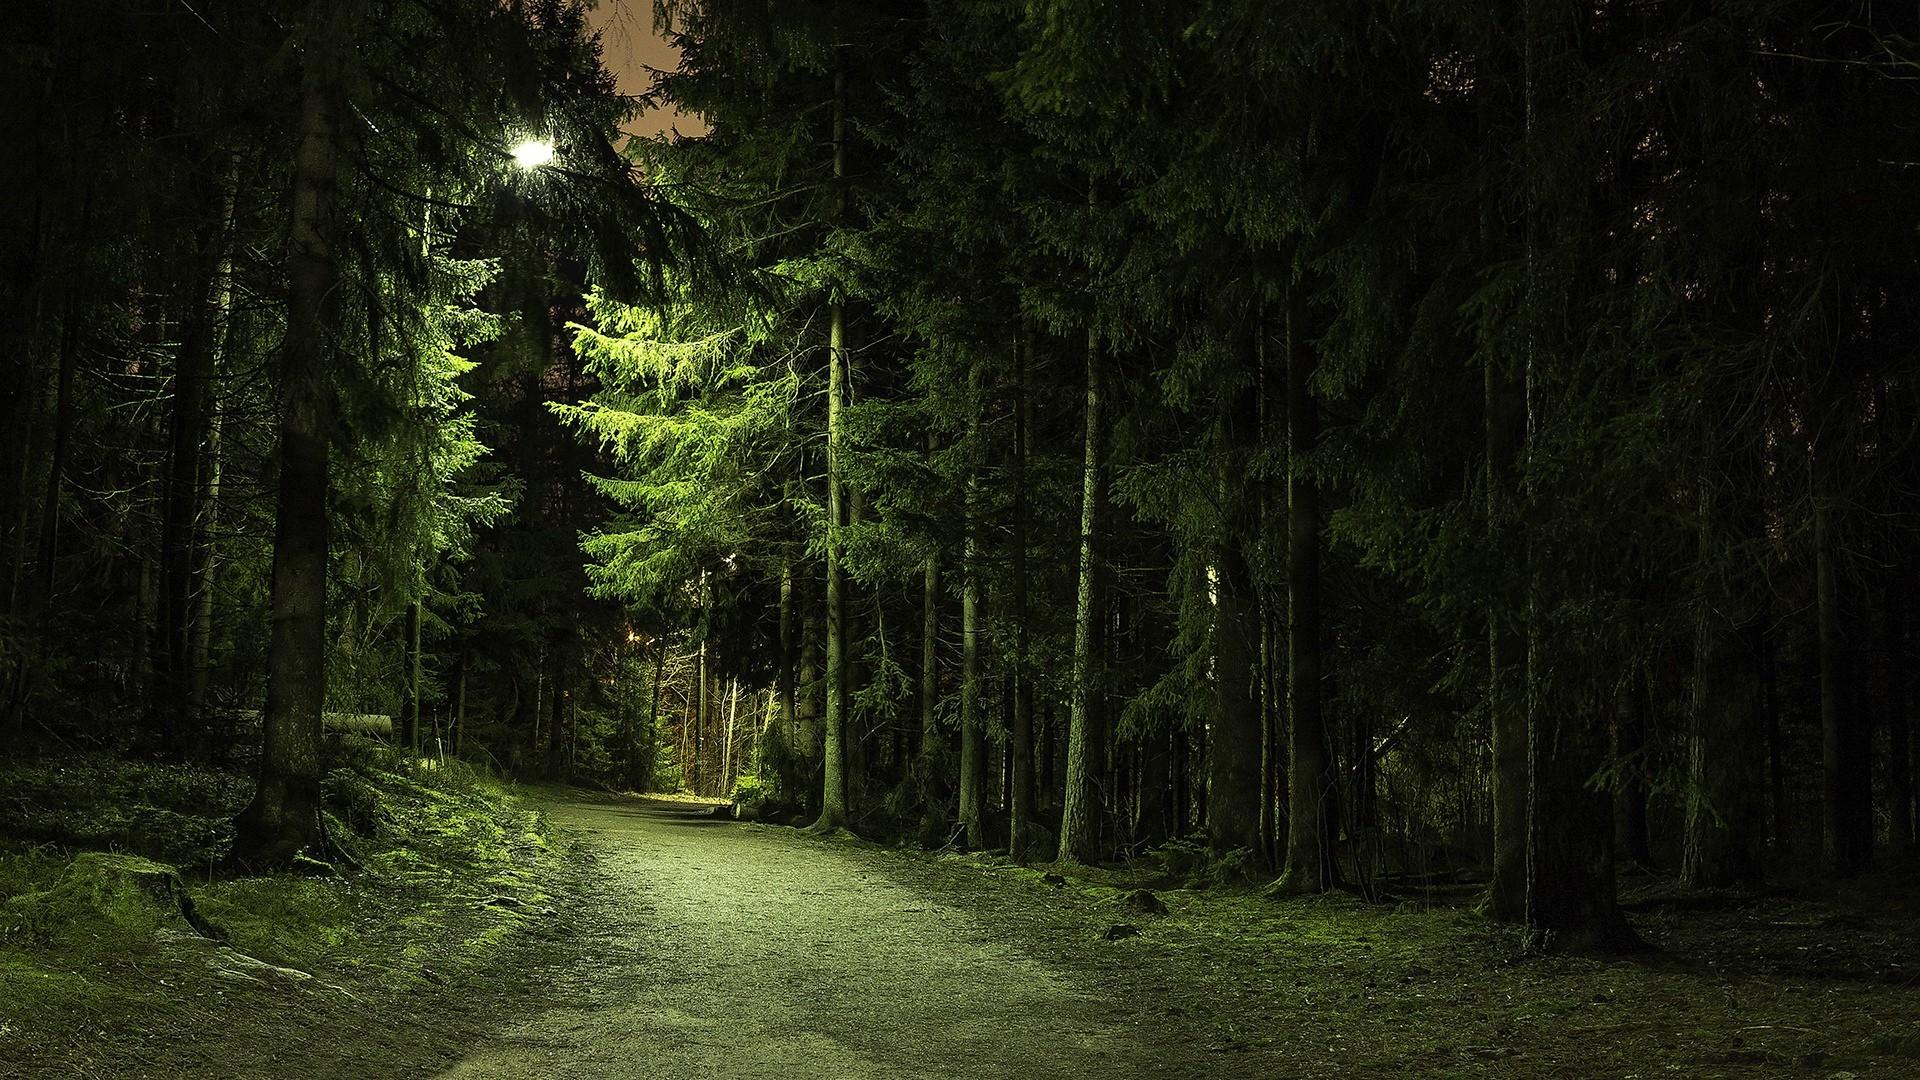 Res: 1920x1080, nature, Trees, Forest, Green, Branch, Path, Lights, Landscape, Pine Trees,  Dirt Road Wallpapers HD / Desktop and Mobile Backgrounds